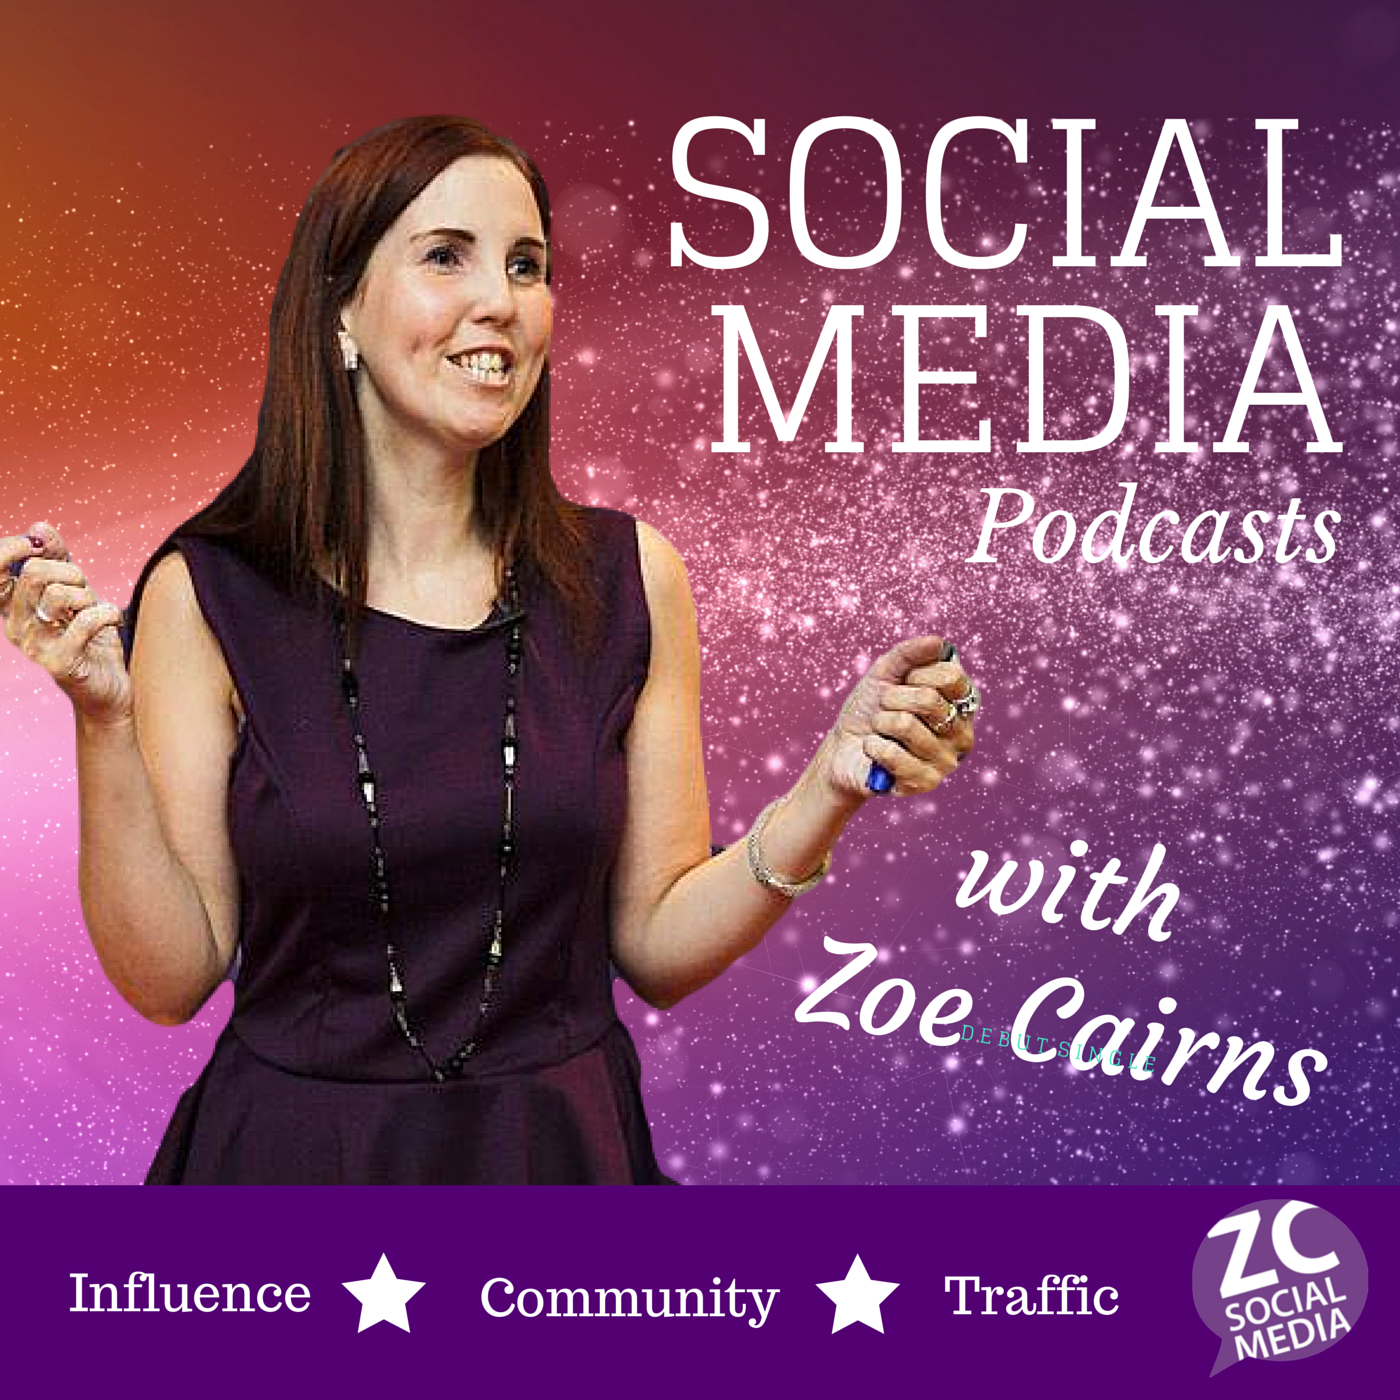 zc social media podcast